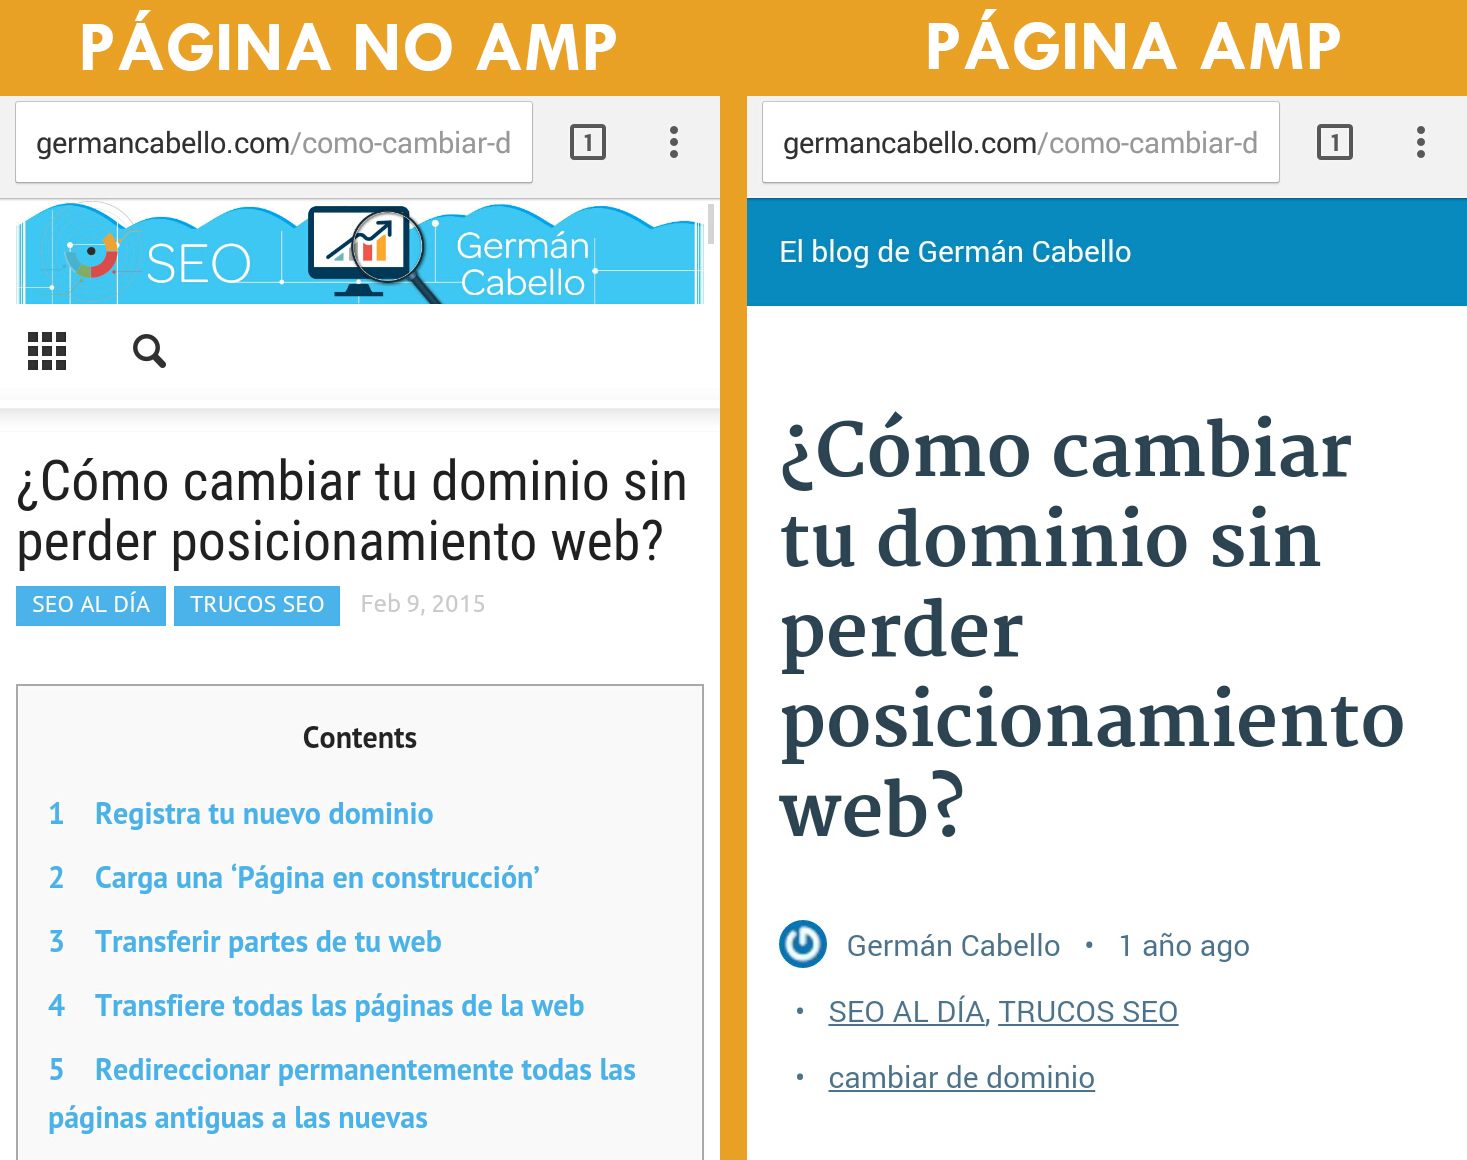 PAGINA AMP VS NO APM